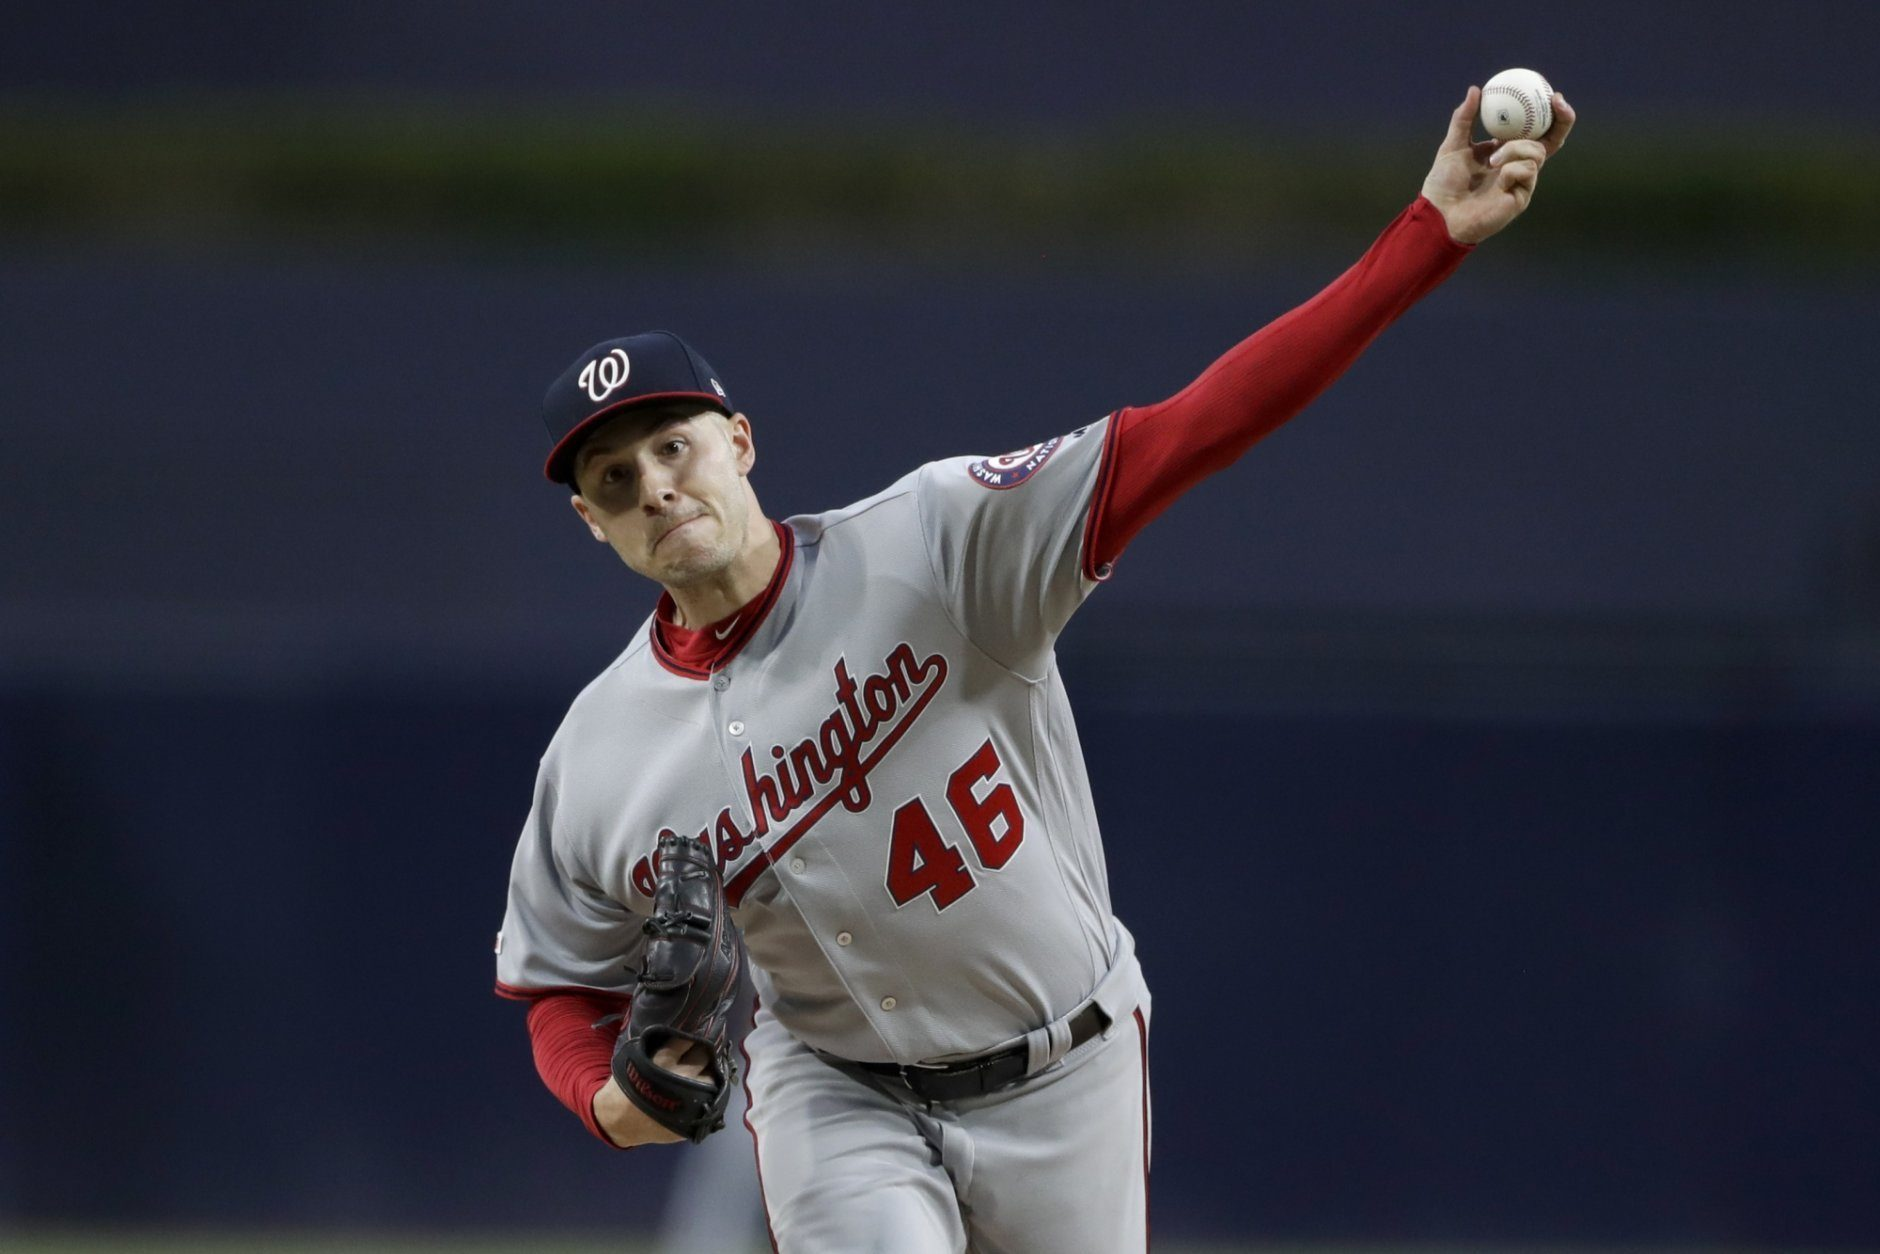 Washington Nationals starting pitcher Patrick Corbin works against a San Diego Padres batter during the first inning of a baseball game Thursday, June 6, 2019, in San Diego. (AP Photo/Gregory Bull)